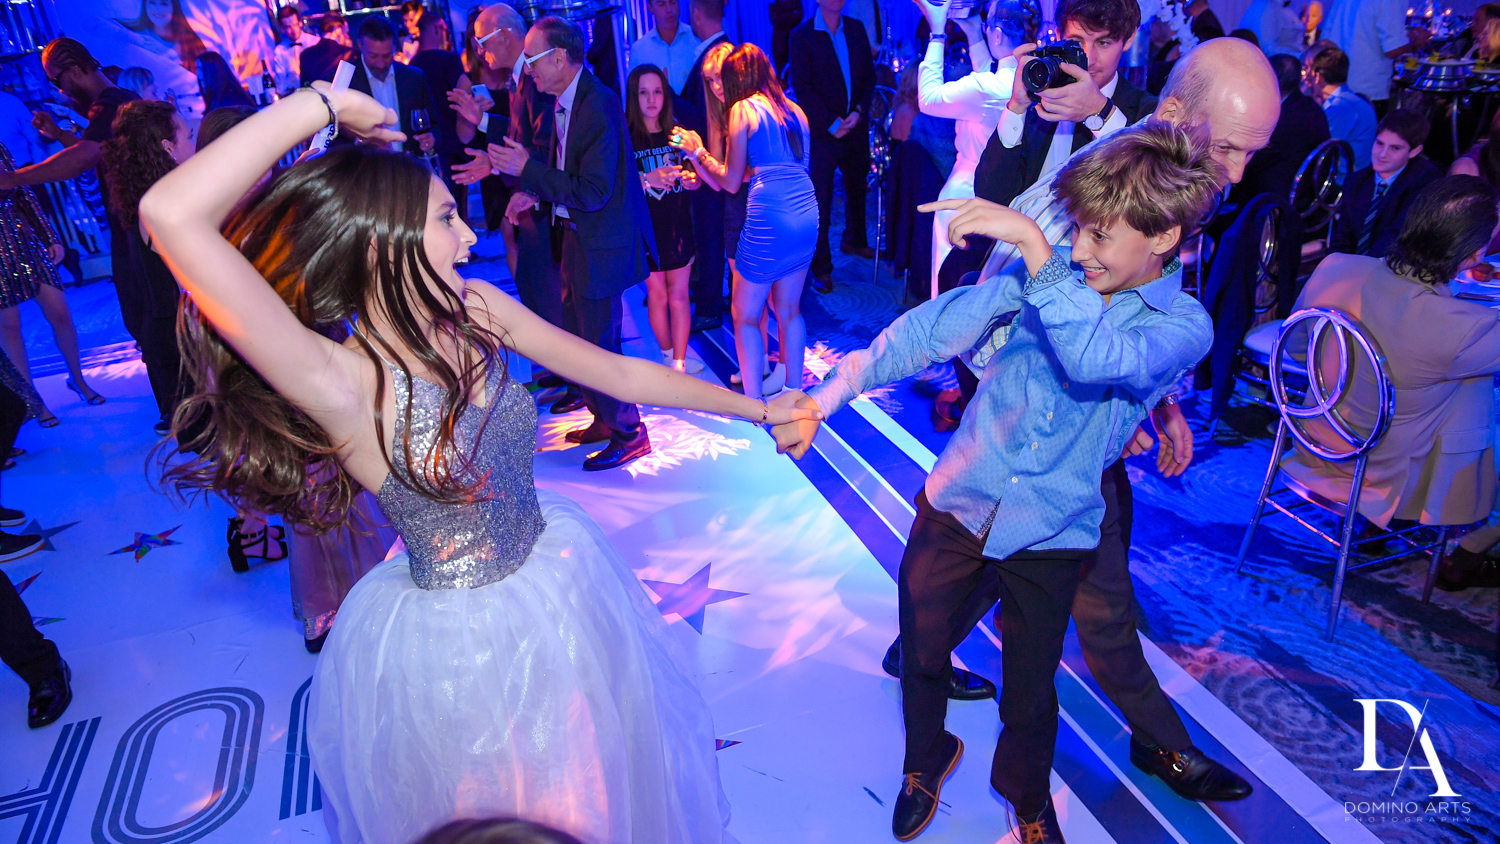 fun dancing at Trendy Decor Bat Mitzvah at St Andrews Country Club by Domino Arts Photography